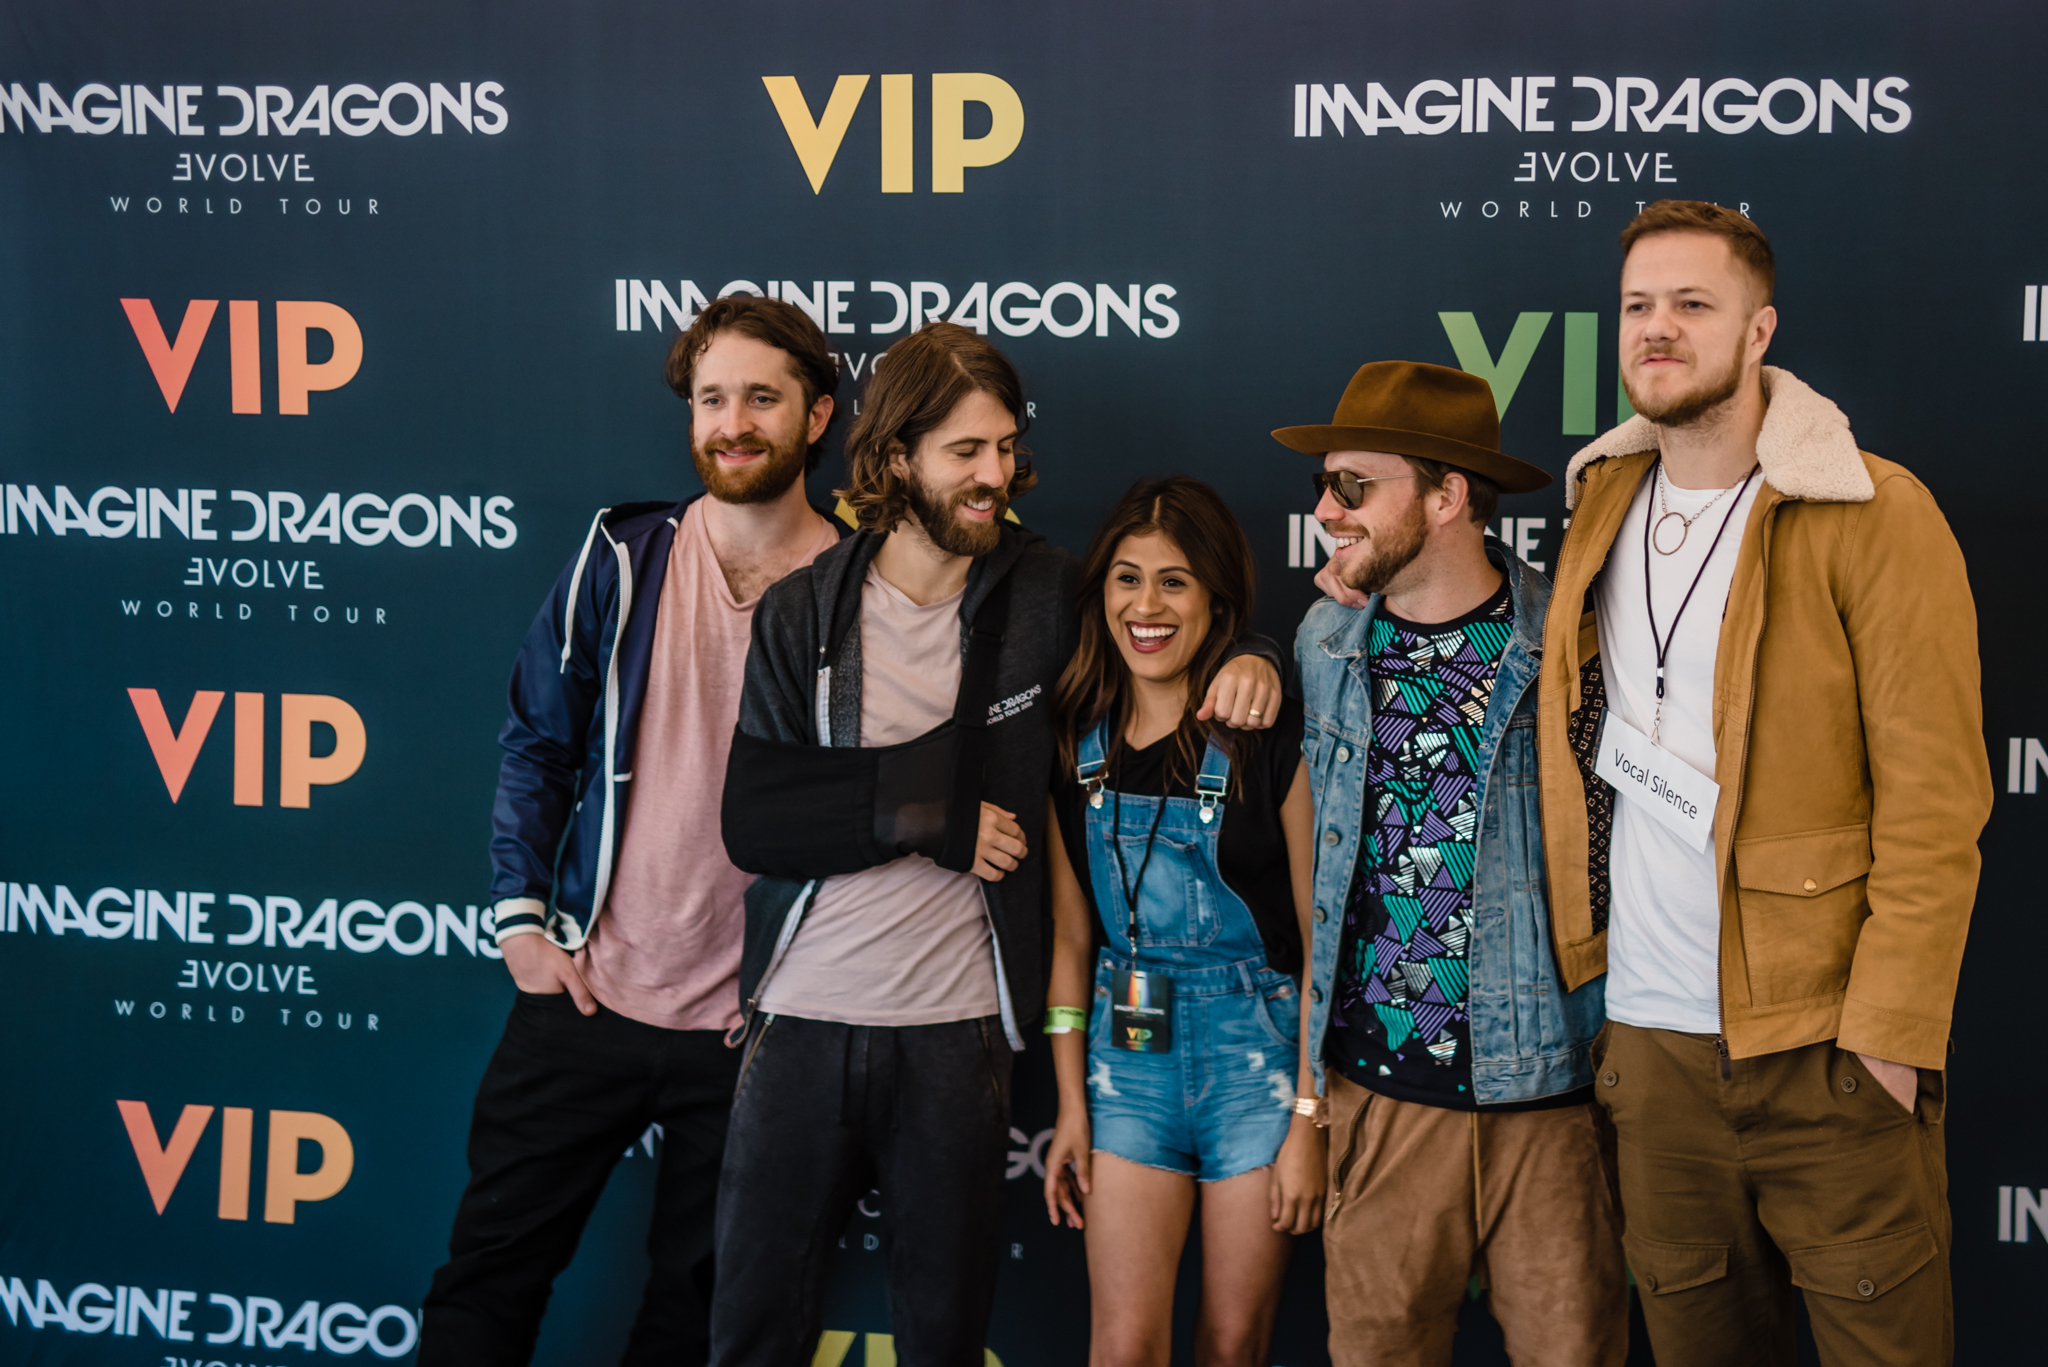 Imagine Dragons Vip Experience Packages